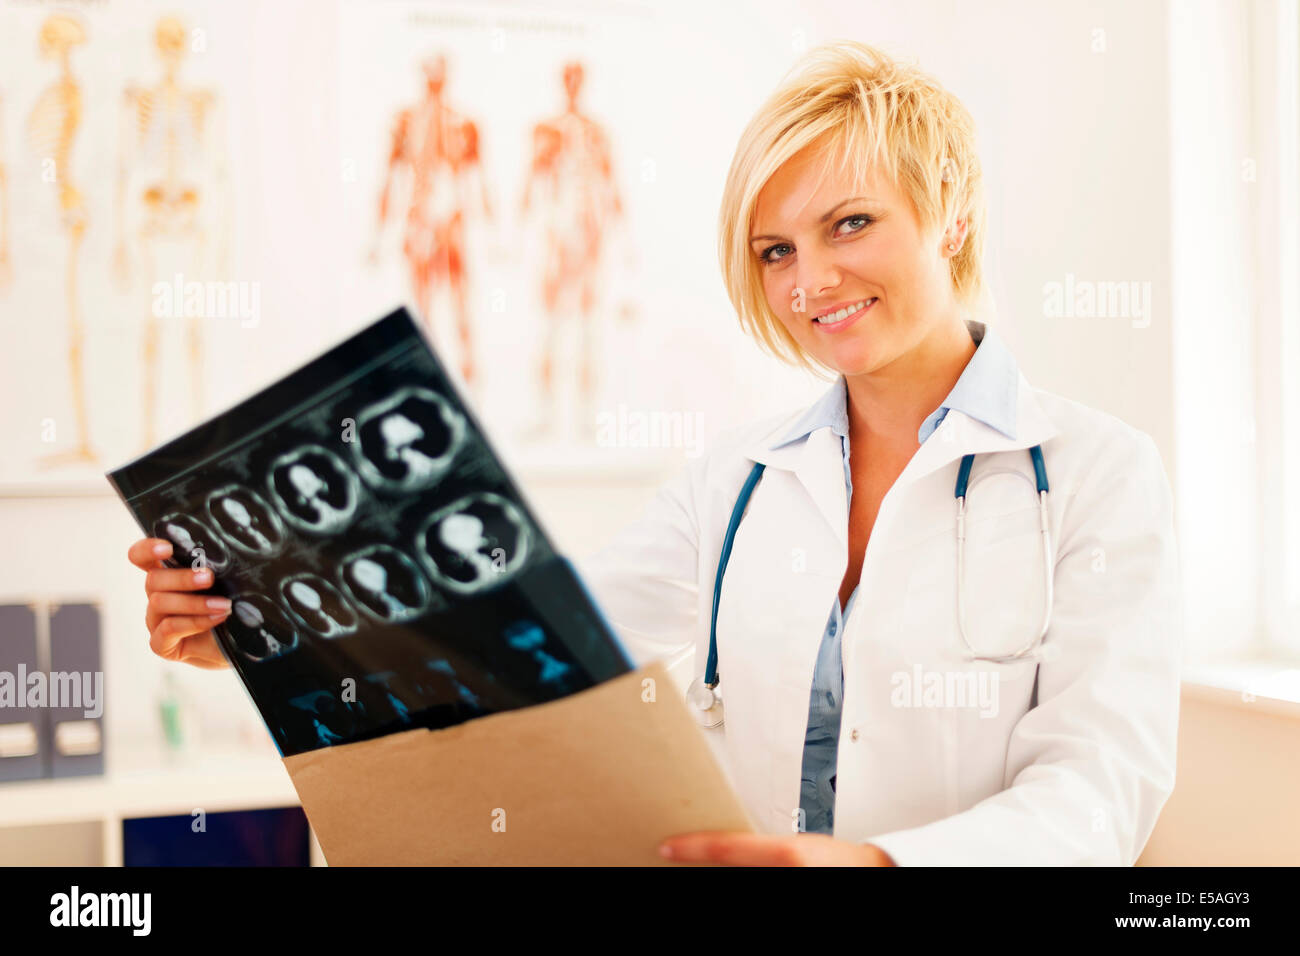 Young female doctor opening envelope with brain tomography result, Debica, Poland - Stock Image